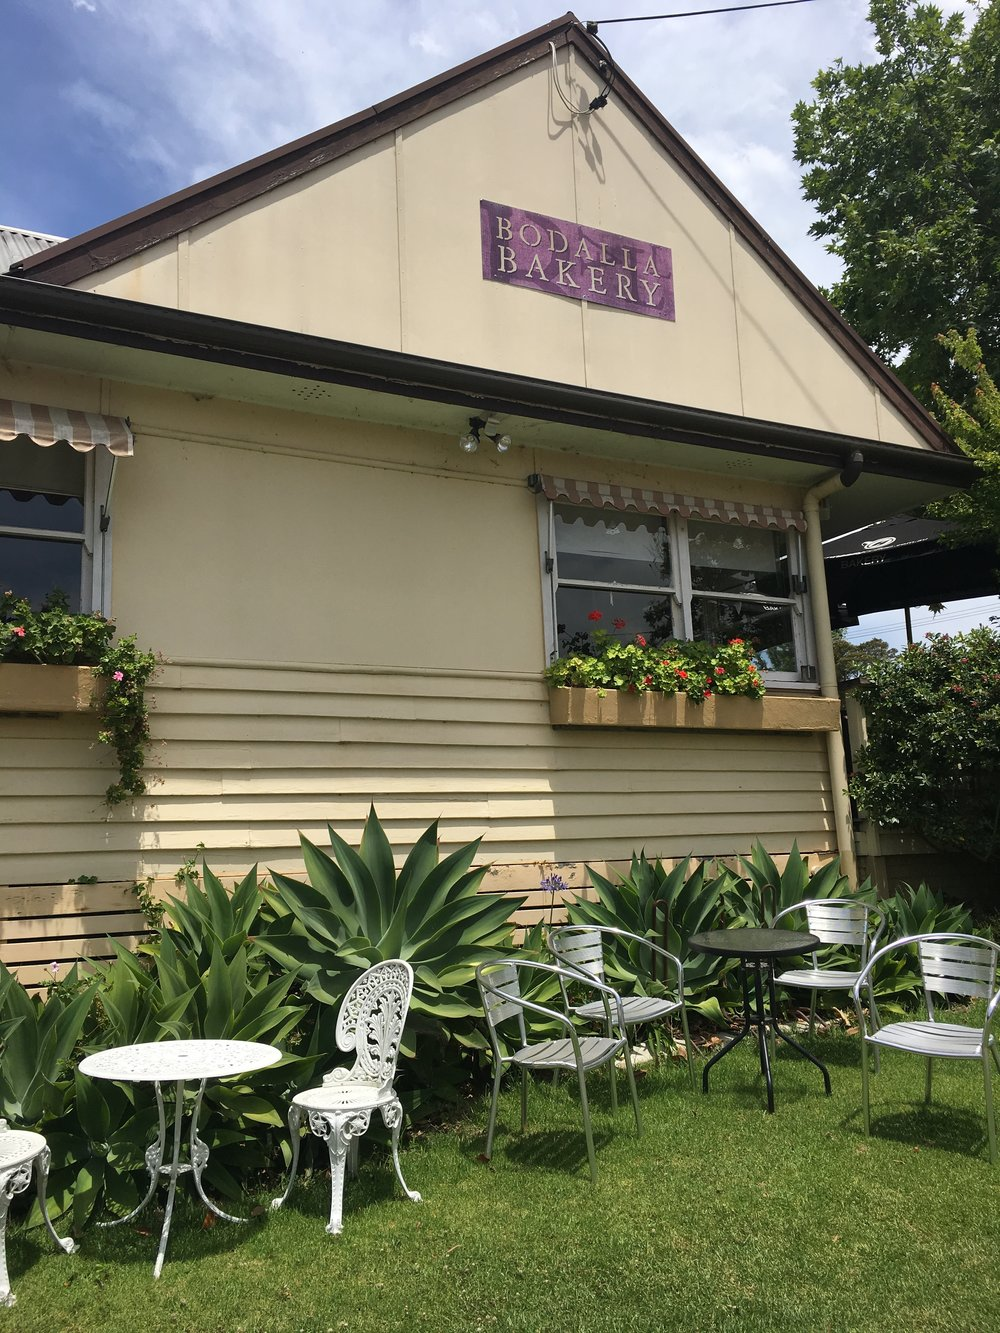 Bodalla Bakery & Cafe